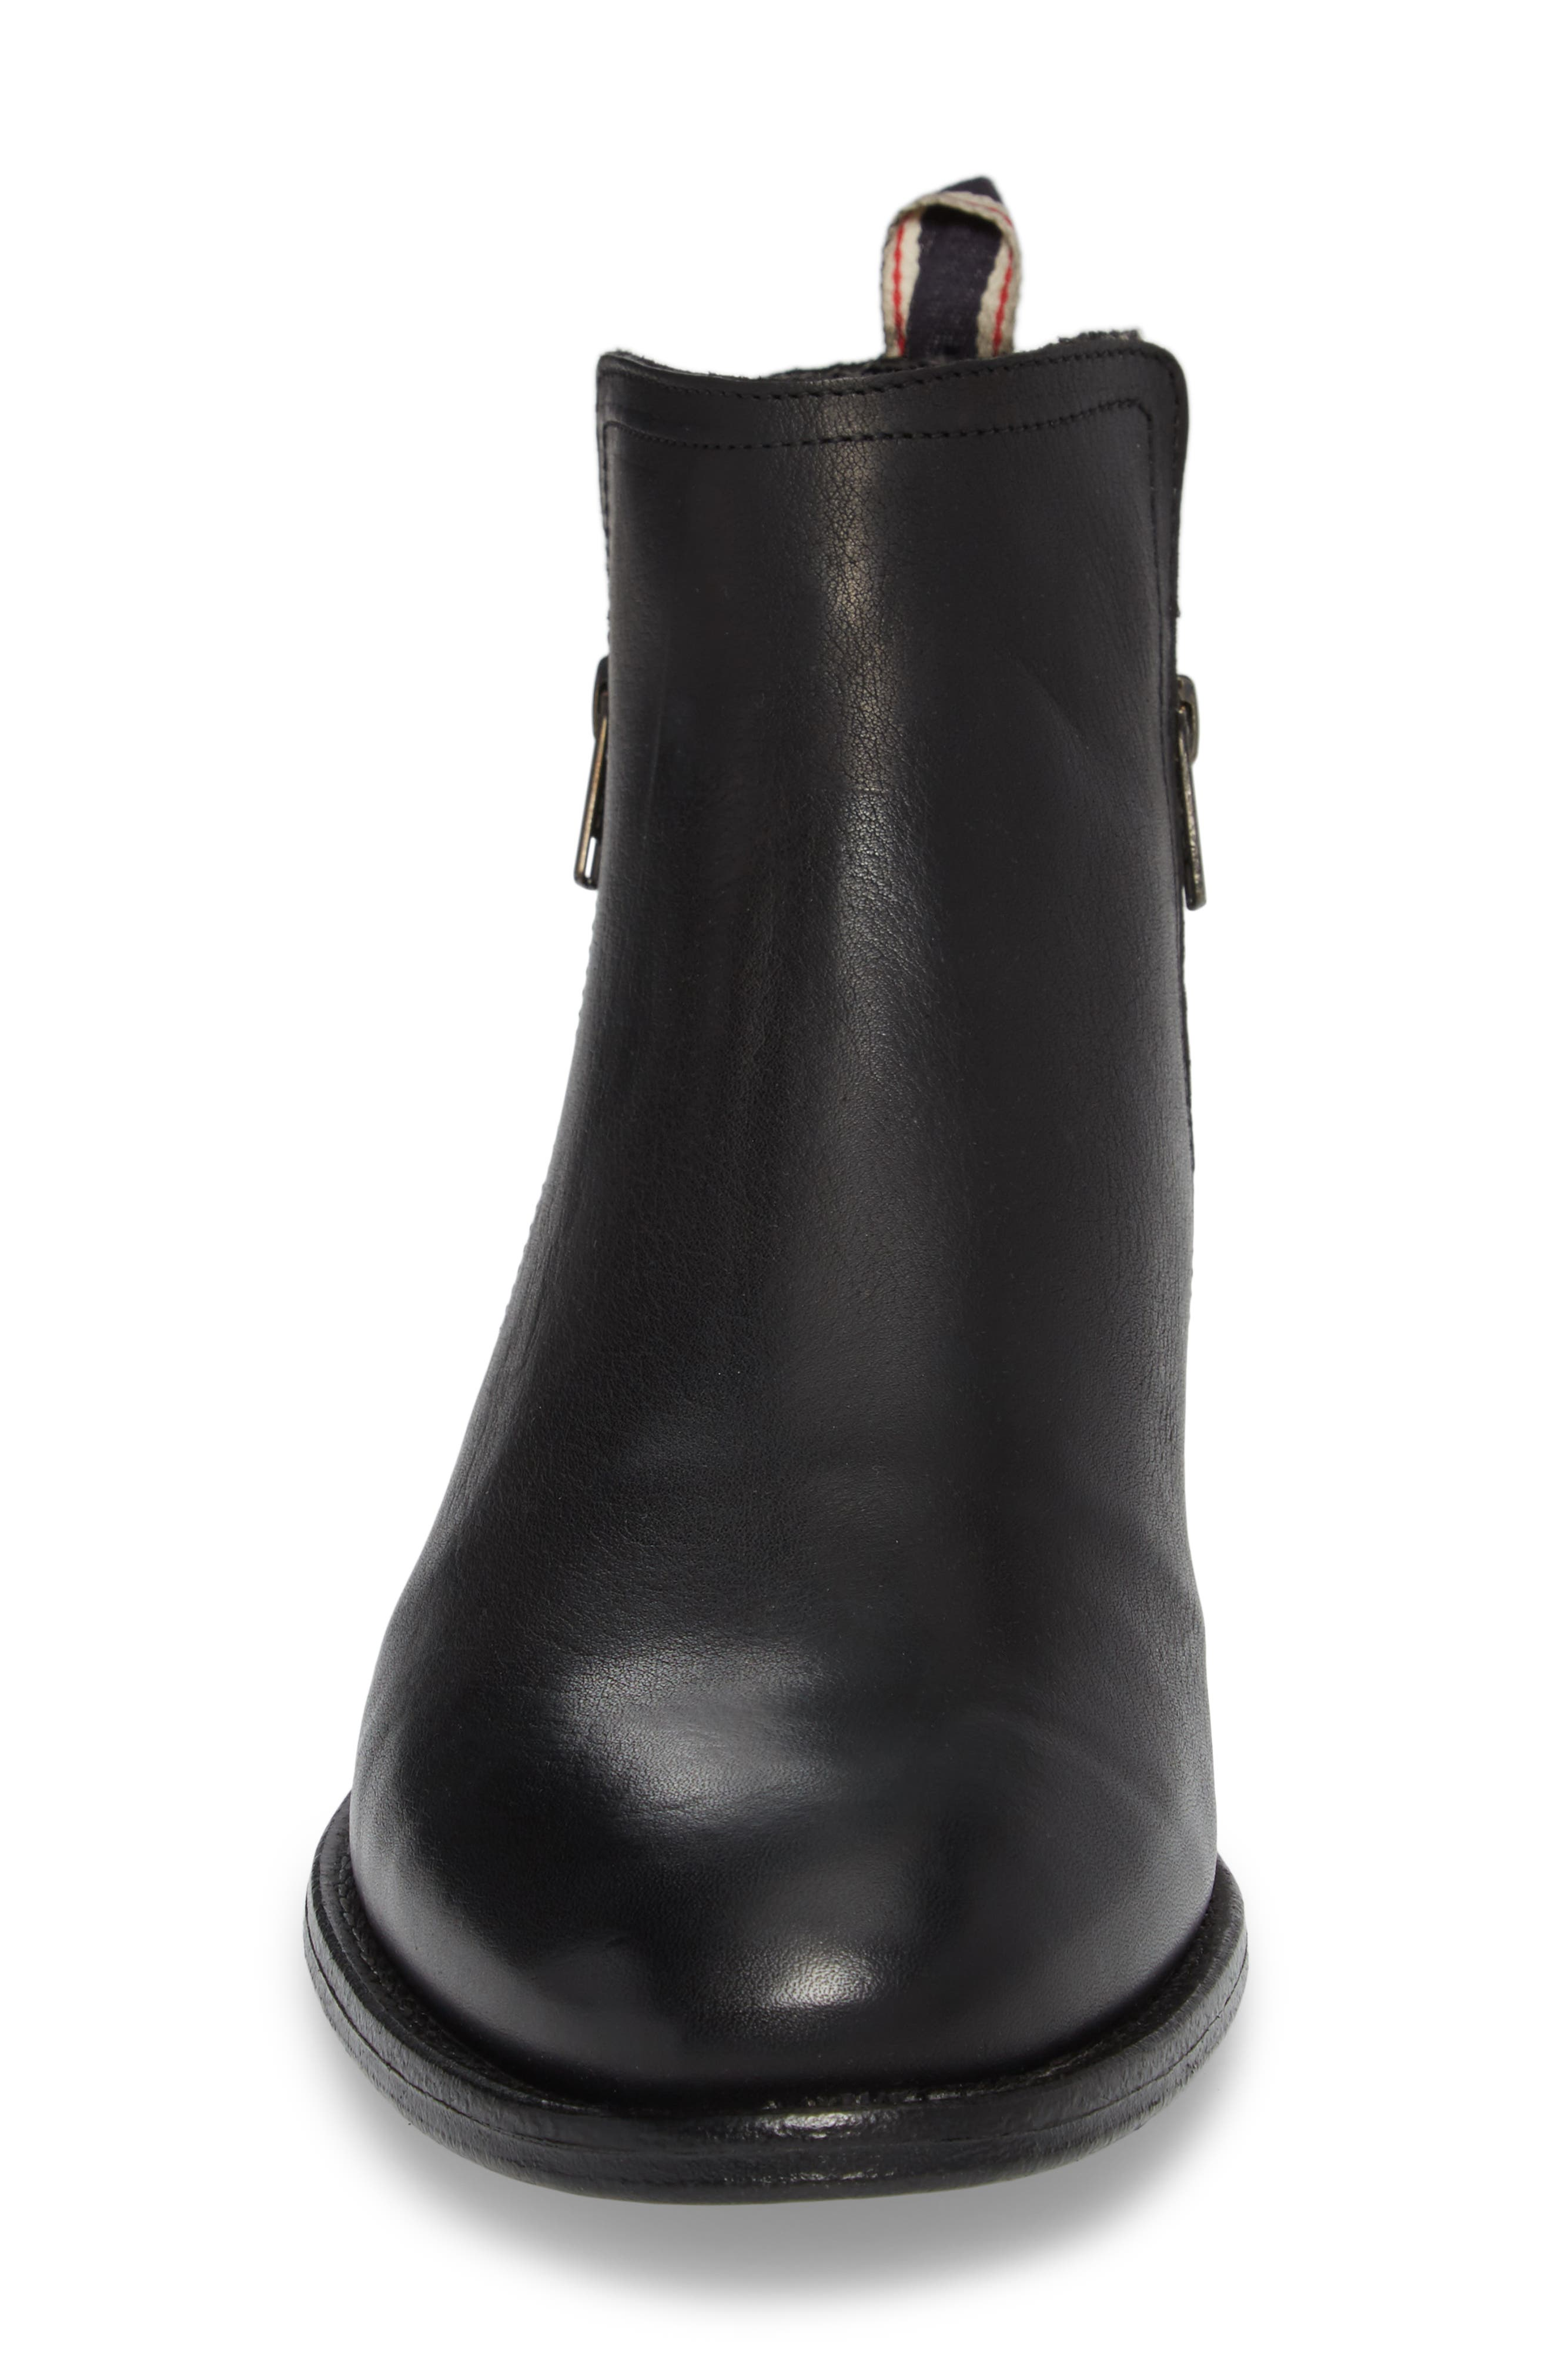 Gerone Zip Boot,                             Alternate thumbnail 4, color,                             Black Leather Fabric